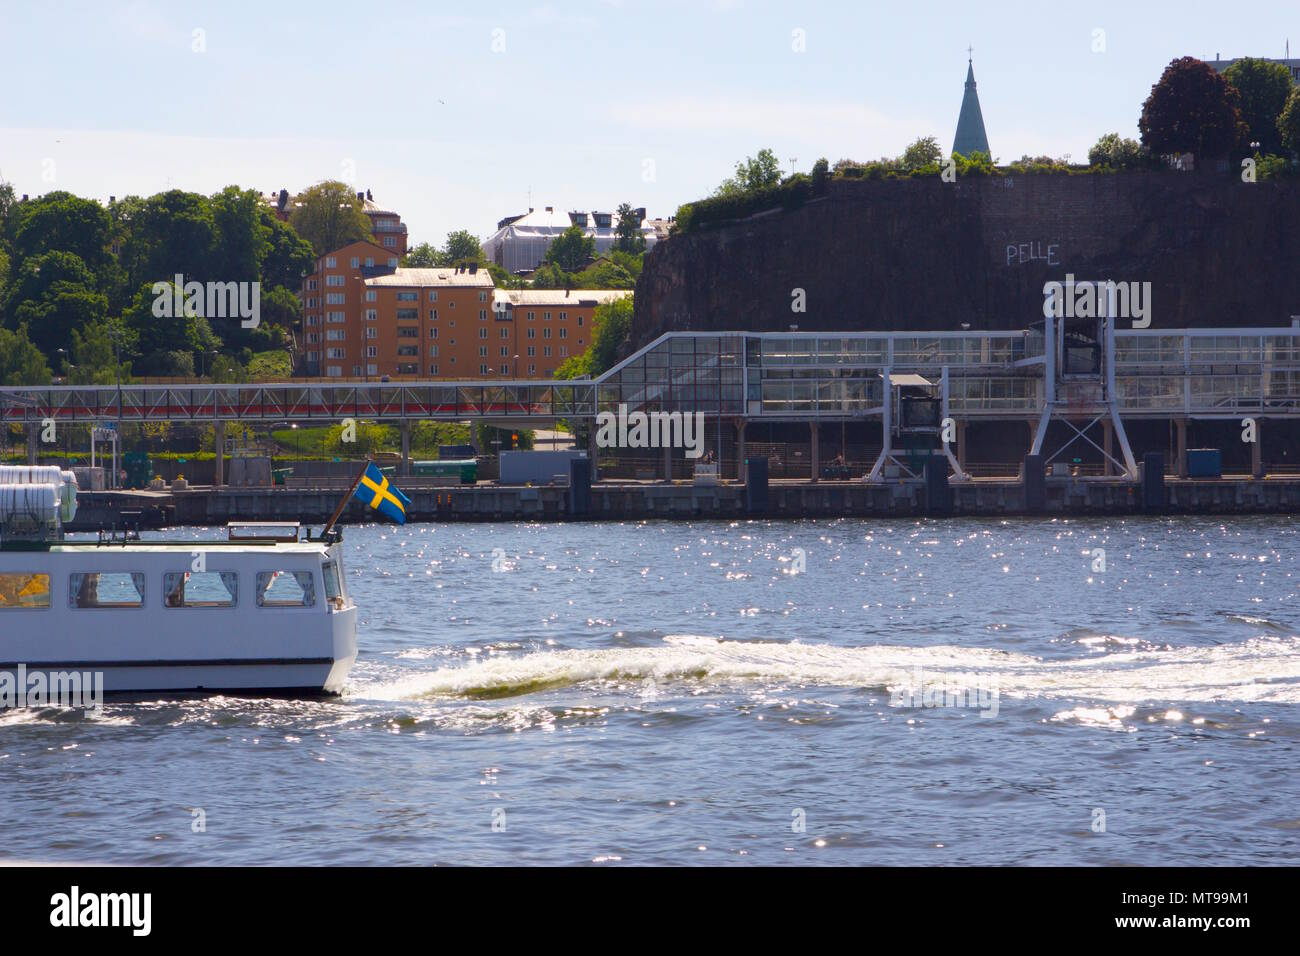 White boat with a Swedish flag on the Baltic Sea in the Stockholm Archipelago - Stock Image